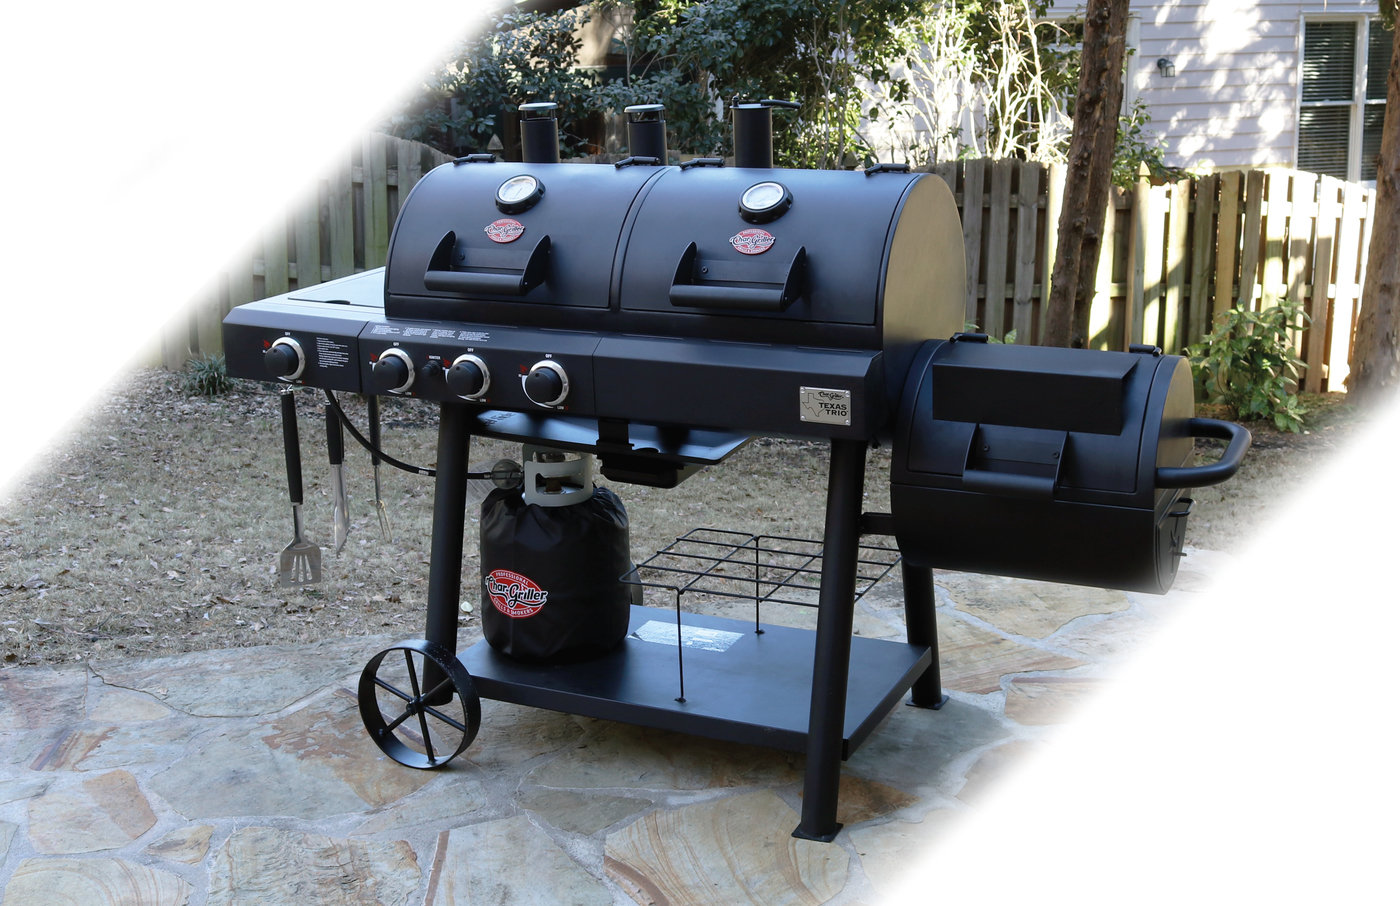 Texas Trio 3 Burner Dual Fuel Grill With Smoker